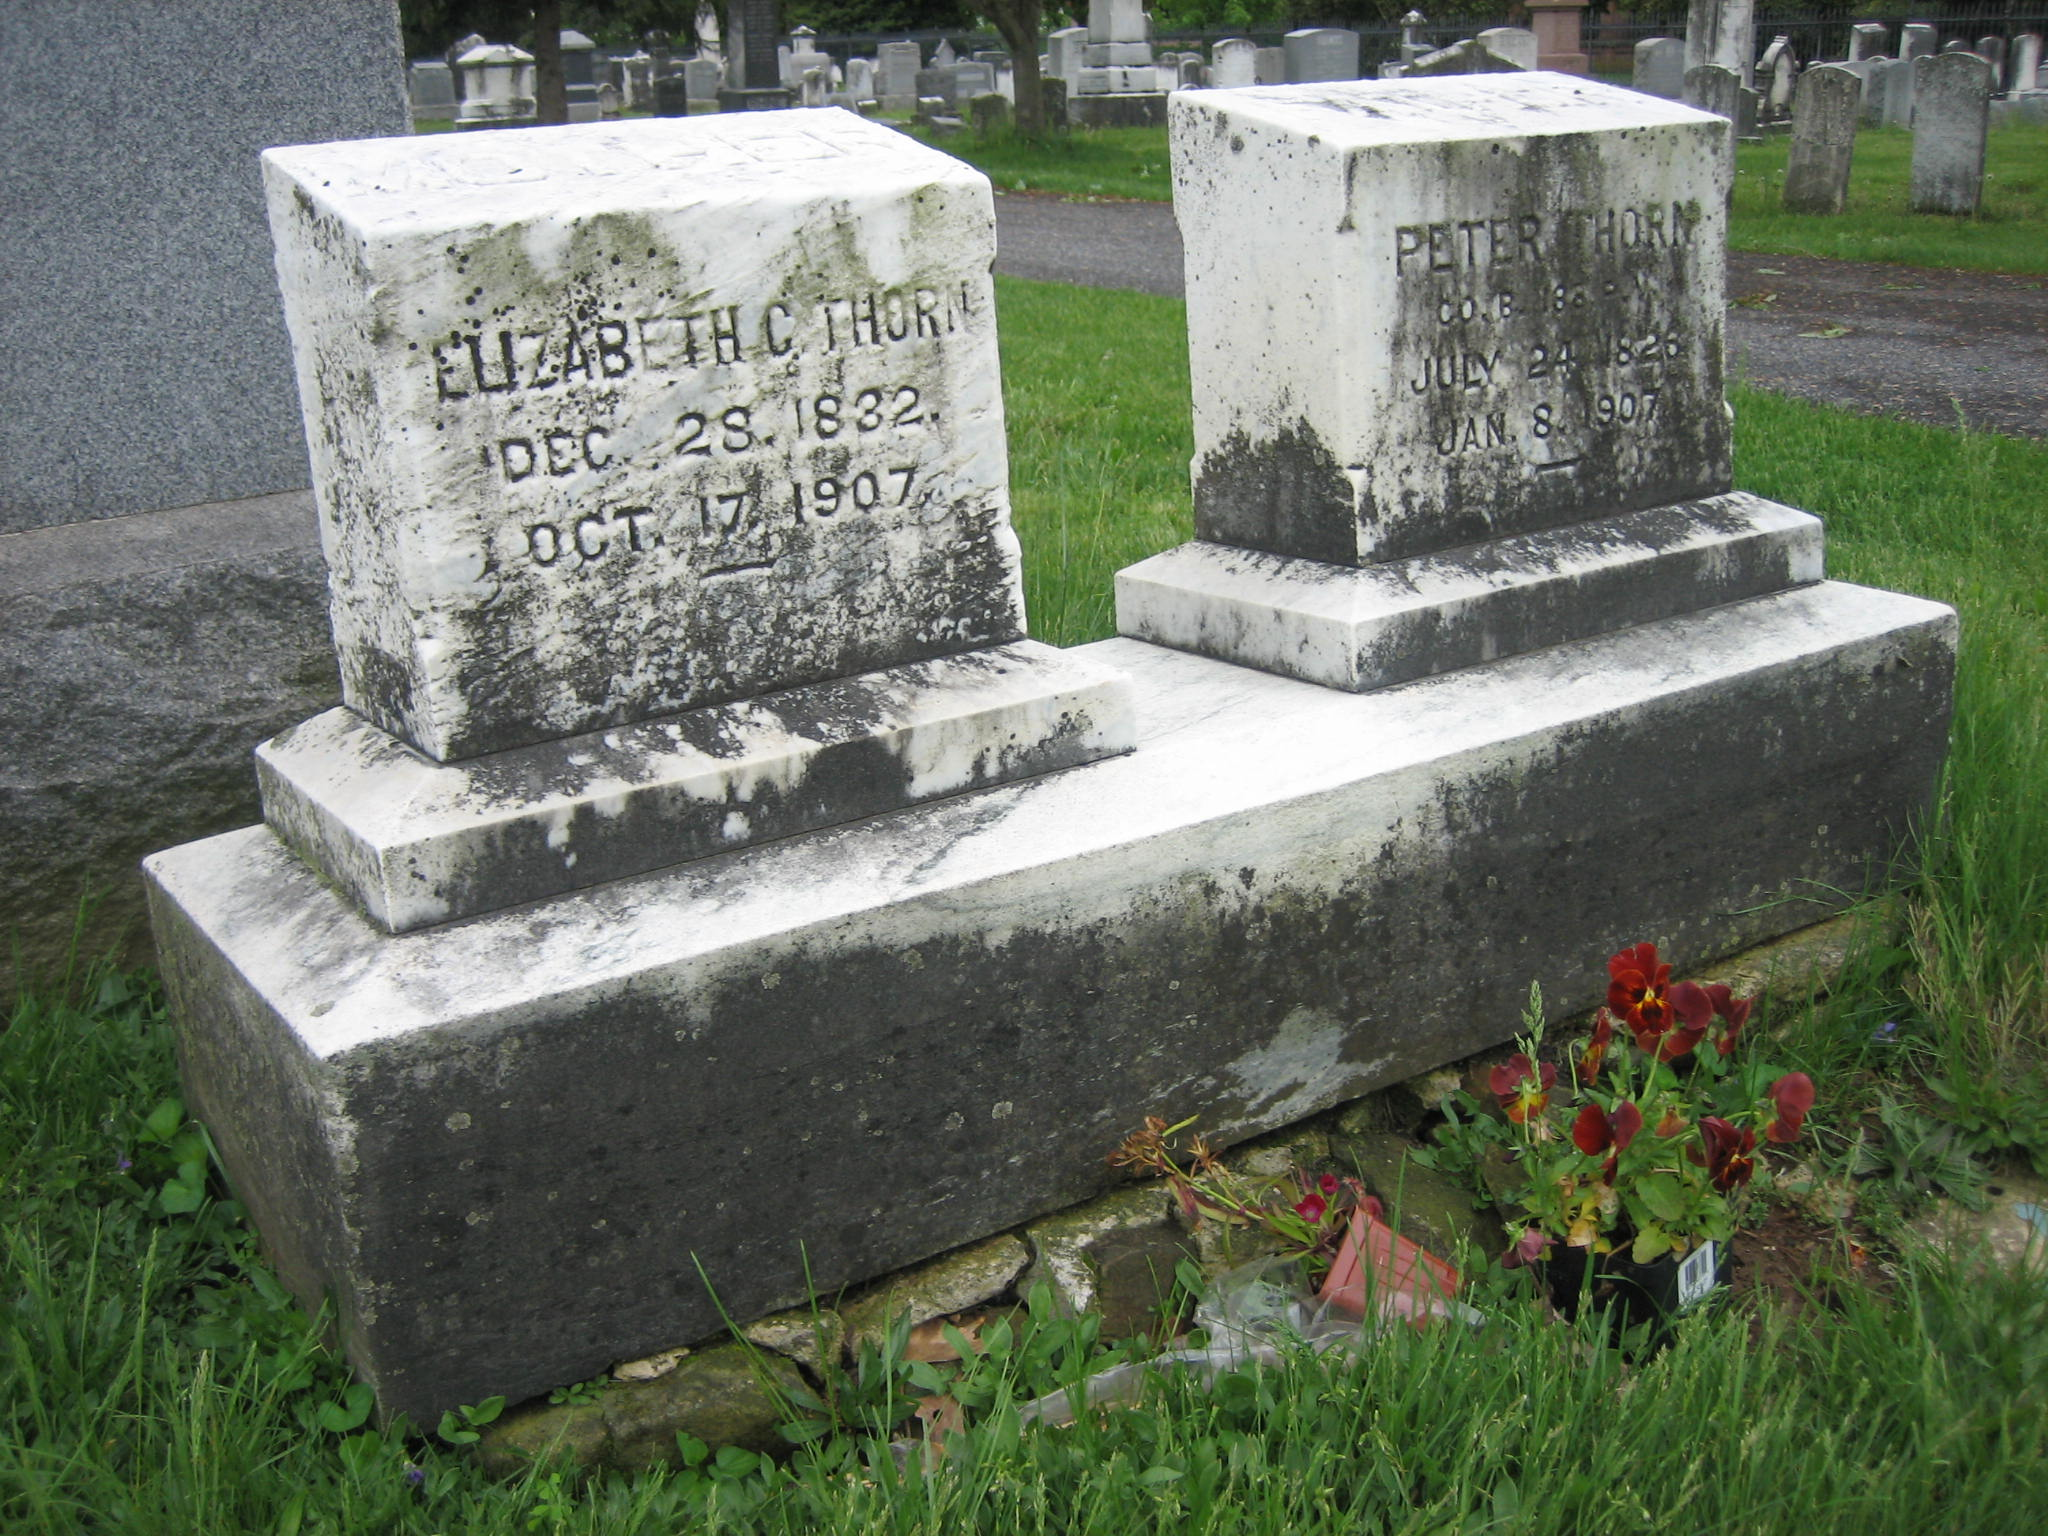 Peter and Elizabeth Thorn graves